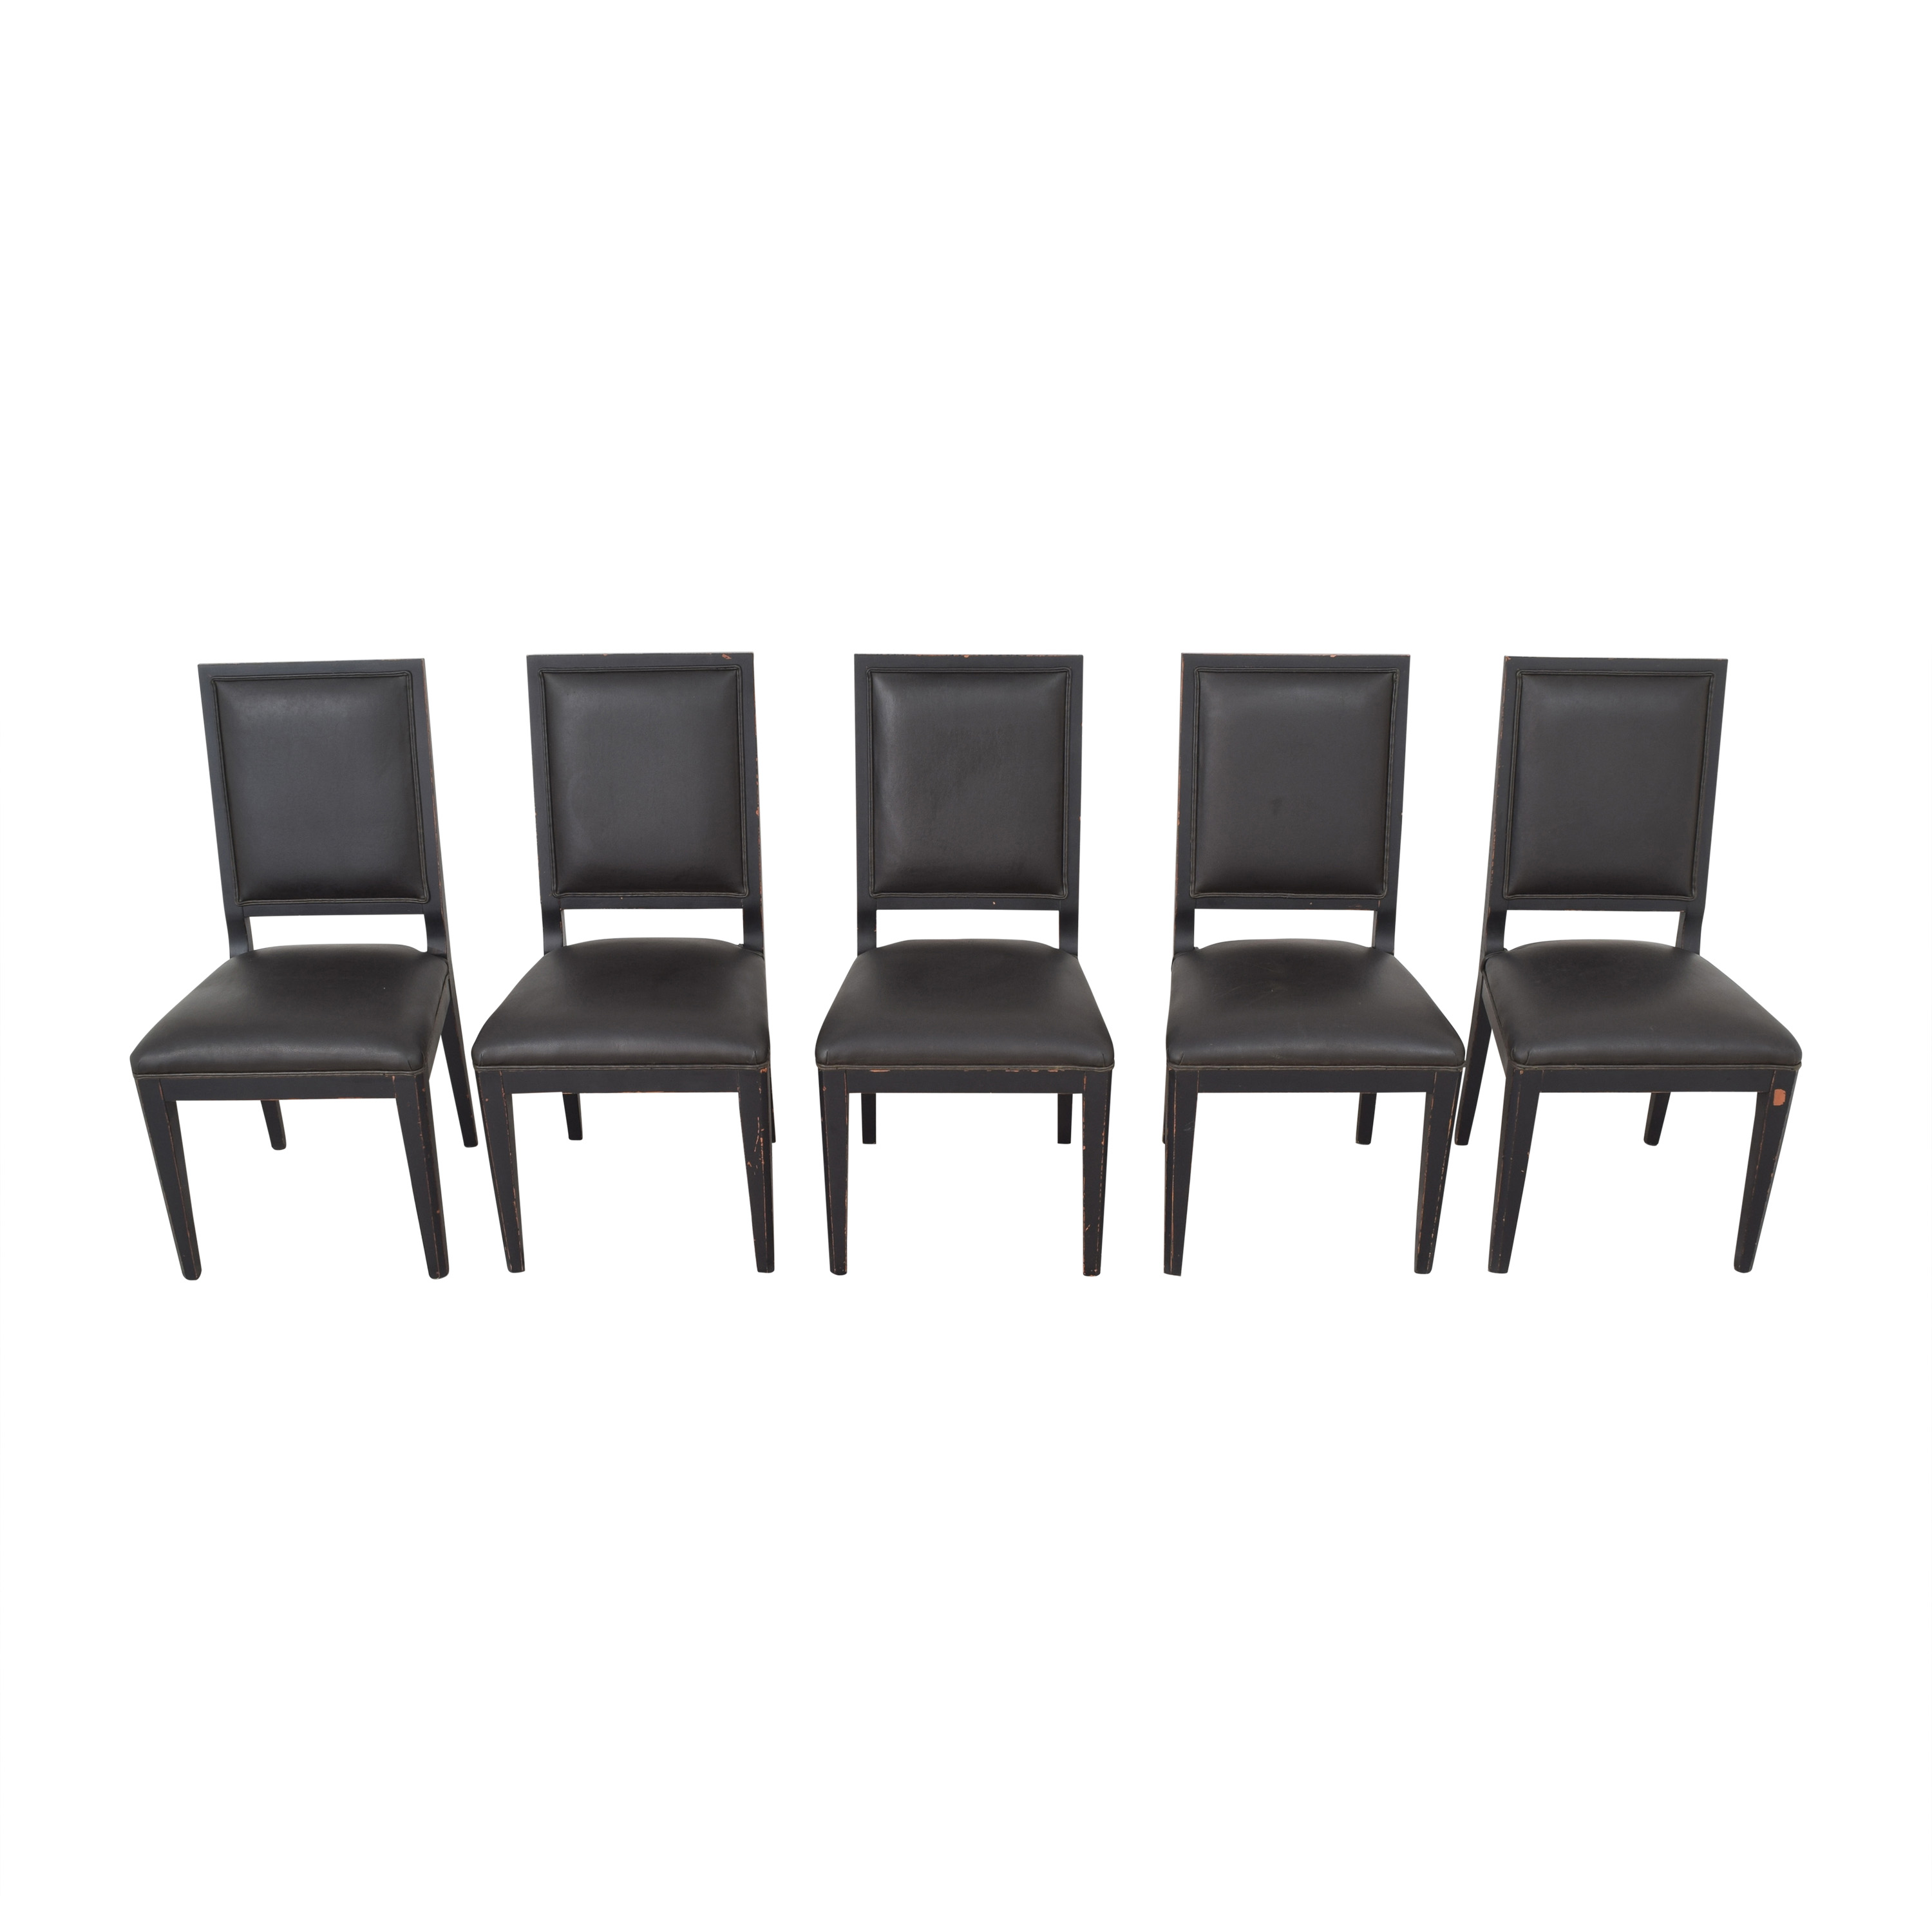 buy Crate & Barrel High Back Dining Chairs Crate & Barrel Chairs